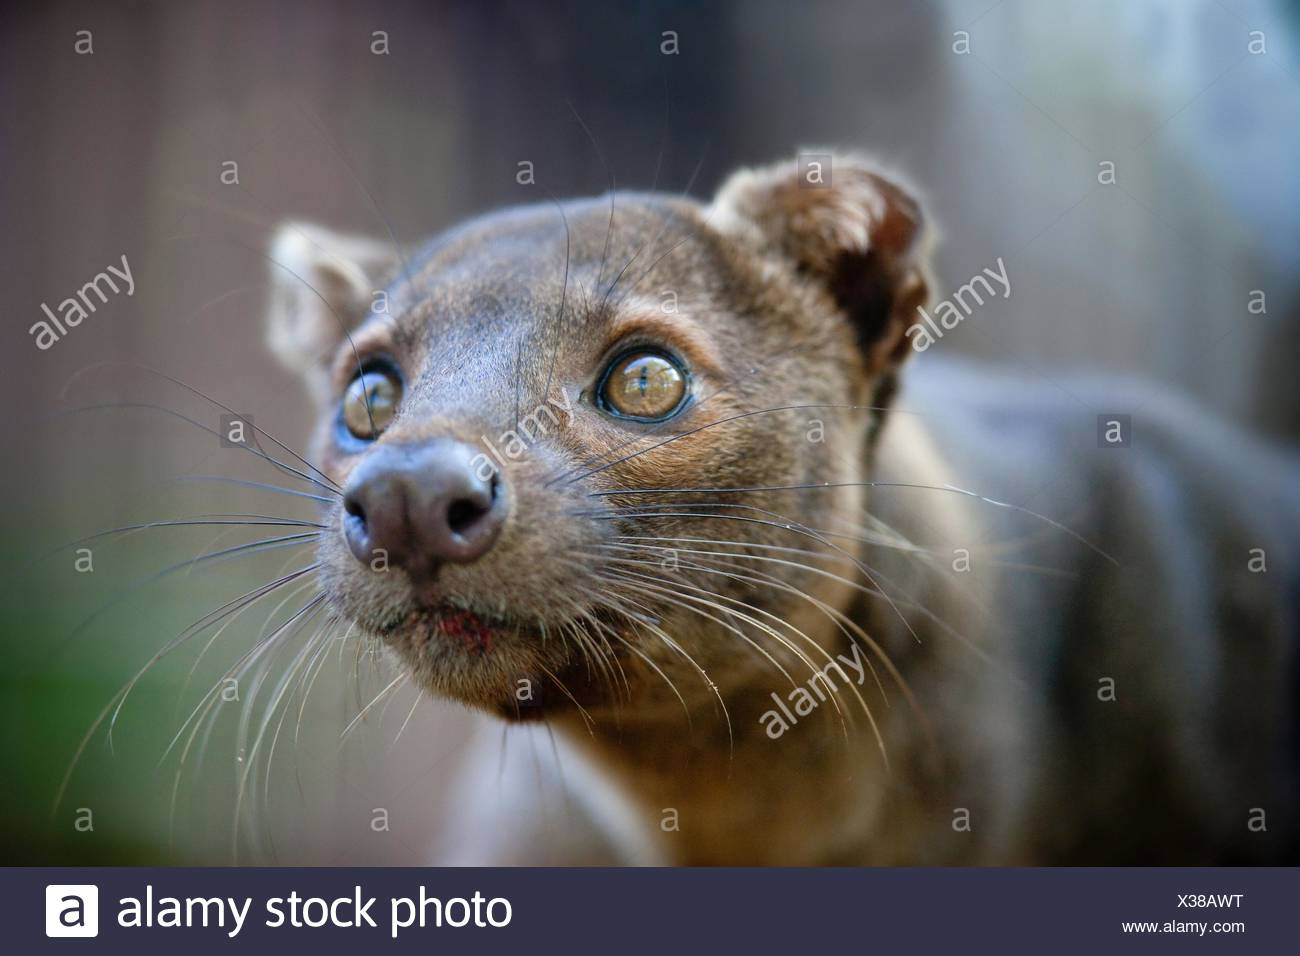 Fossa Stock Photo  277394036 - Alamy b13bc399e2c